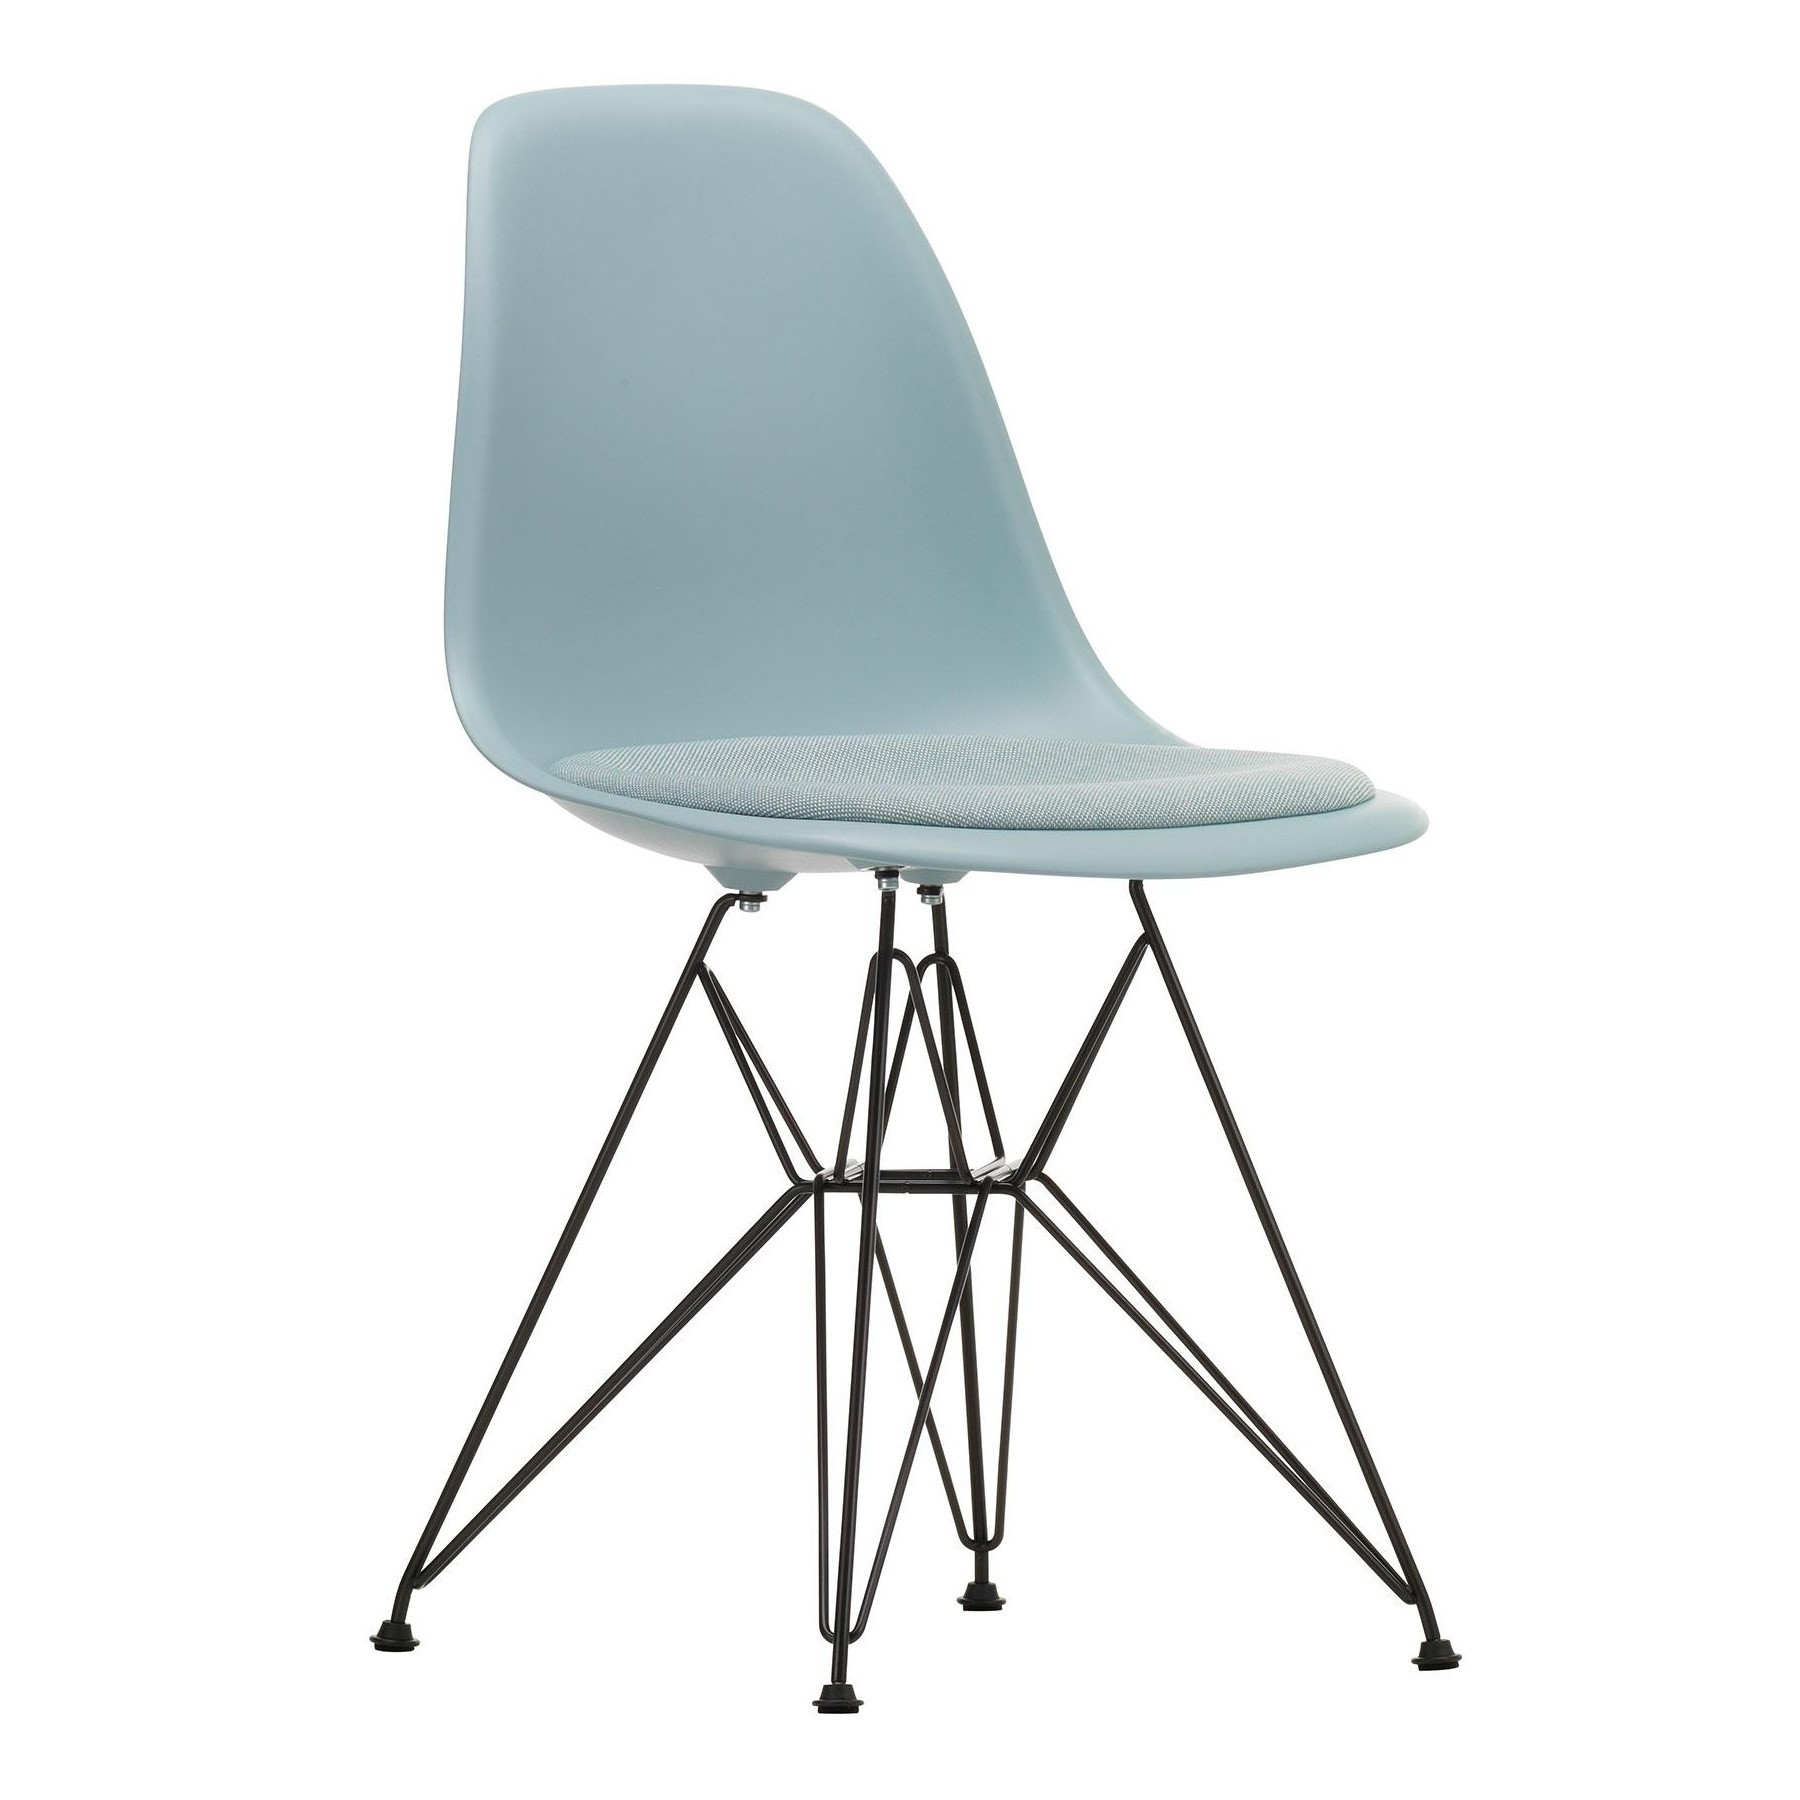 Chair Eames Vitra Eames Plastic Side Chair Dsr Upholsterd | Ambientedirect